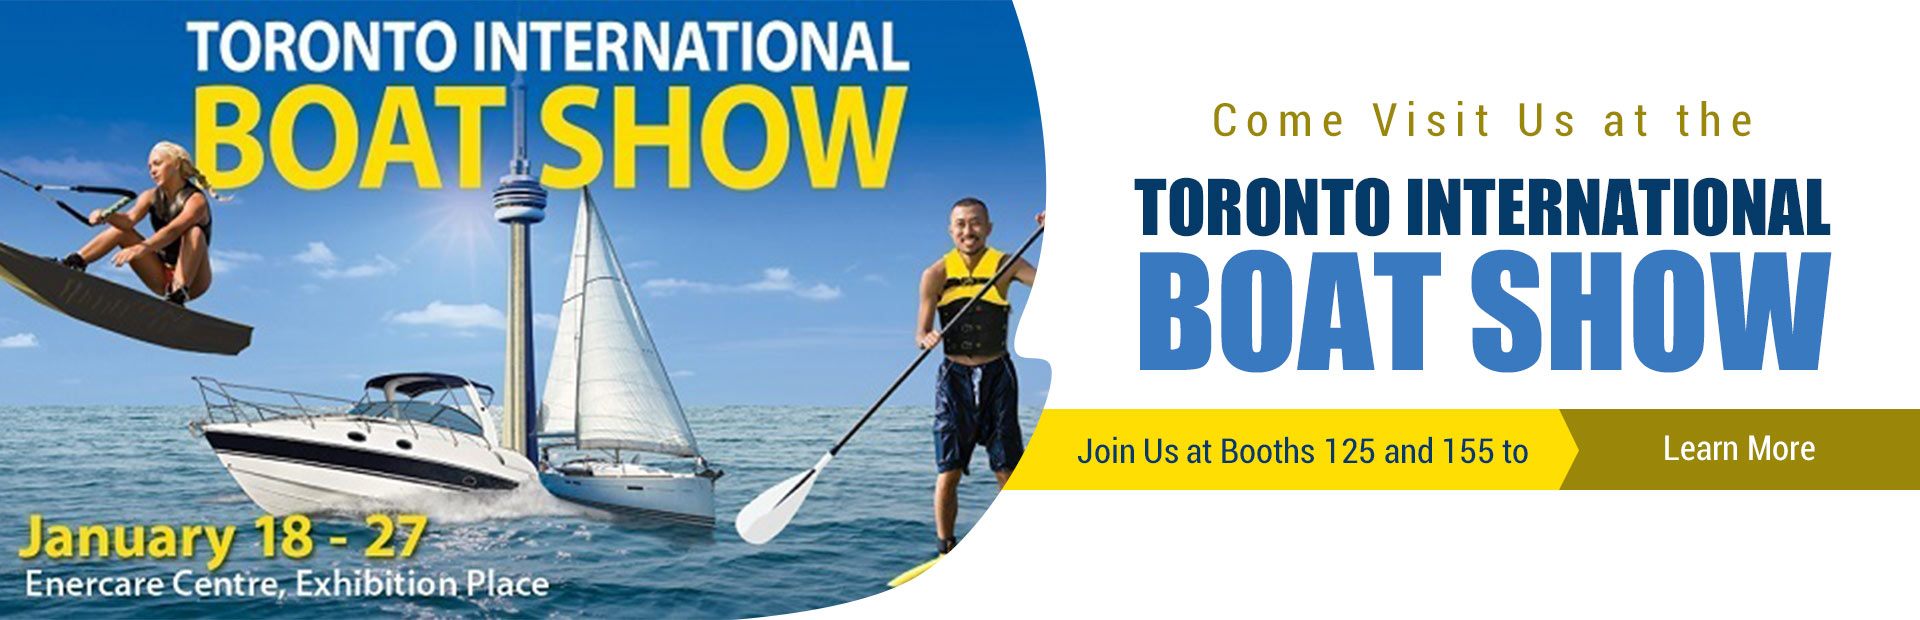 Come visit us at the Toronto International Boat Show! We'll be at booths 125 and 155.